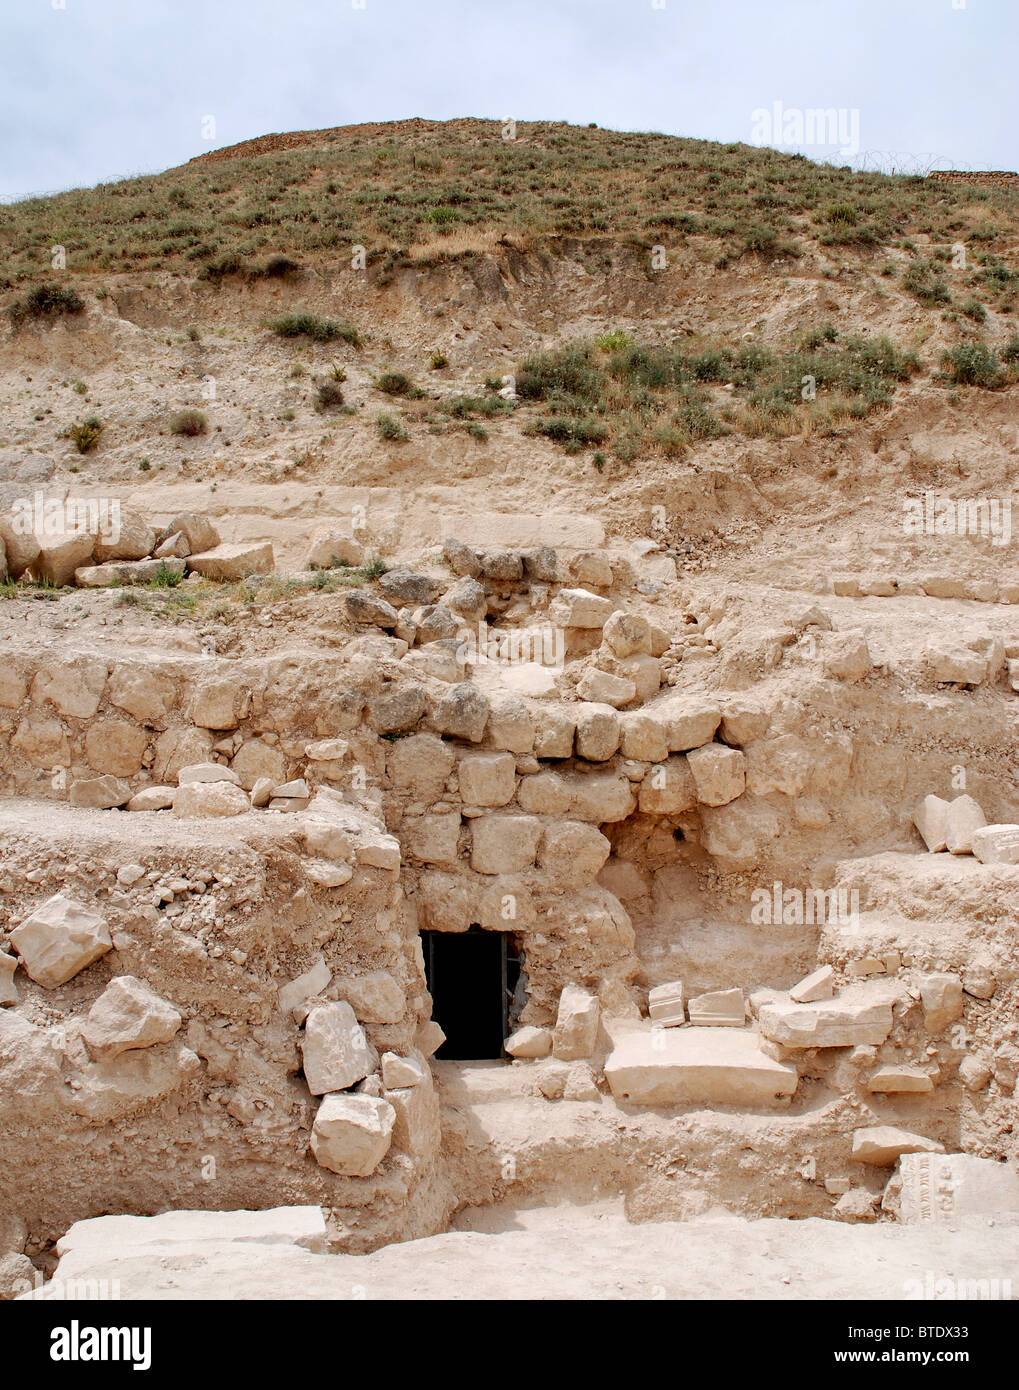 5371. Herodium, King Herod's Tomb. Early stages of excavations. - Stock Image